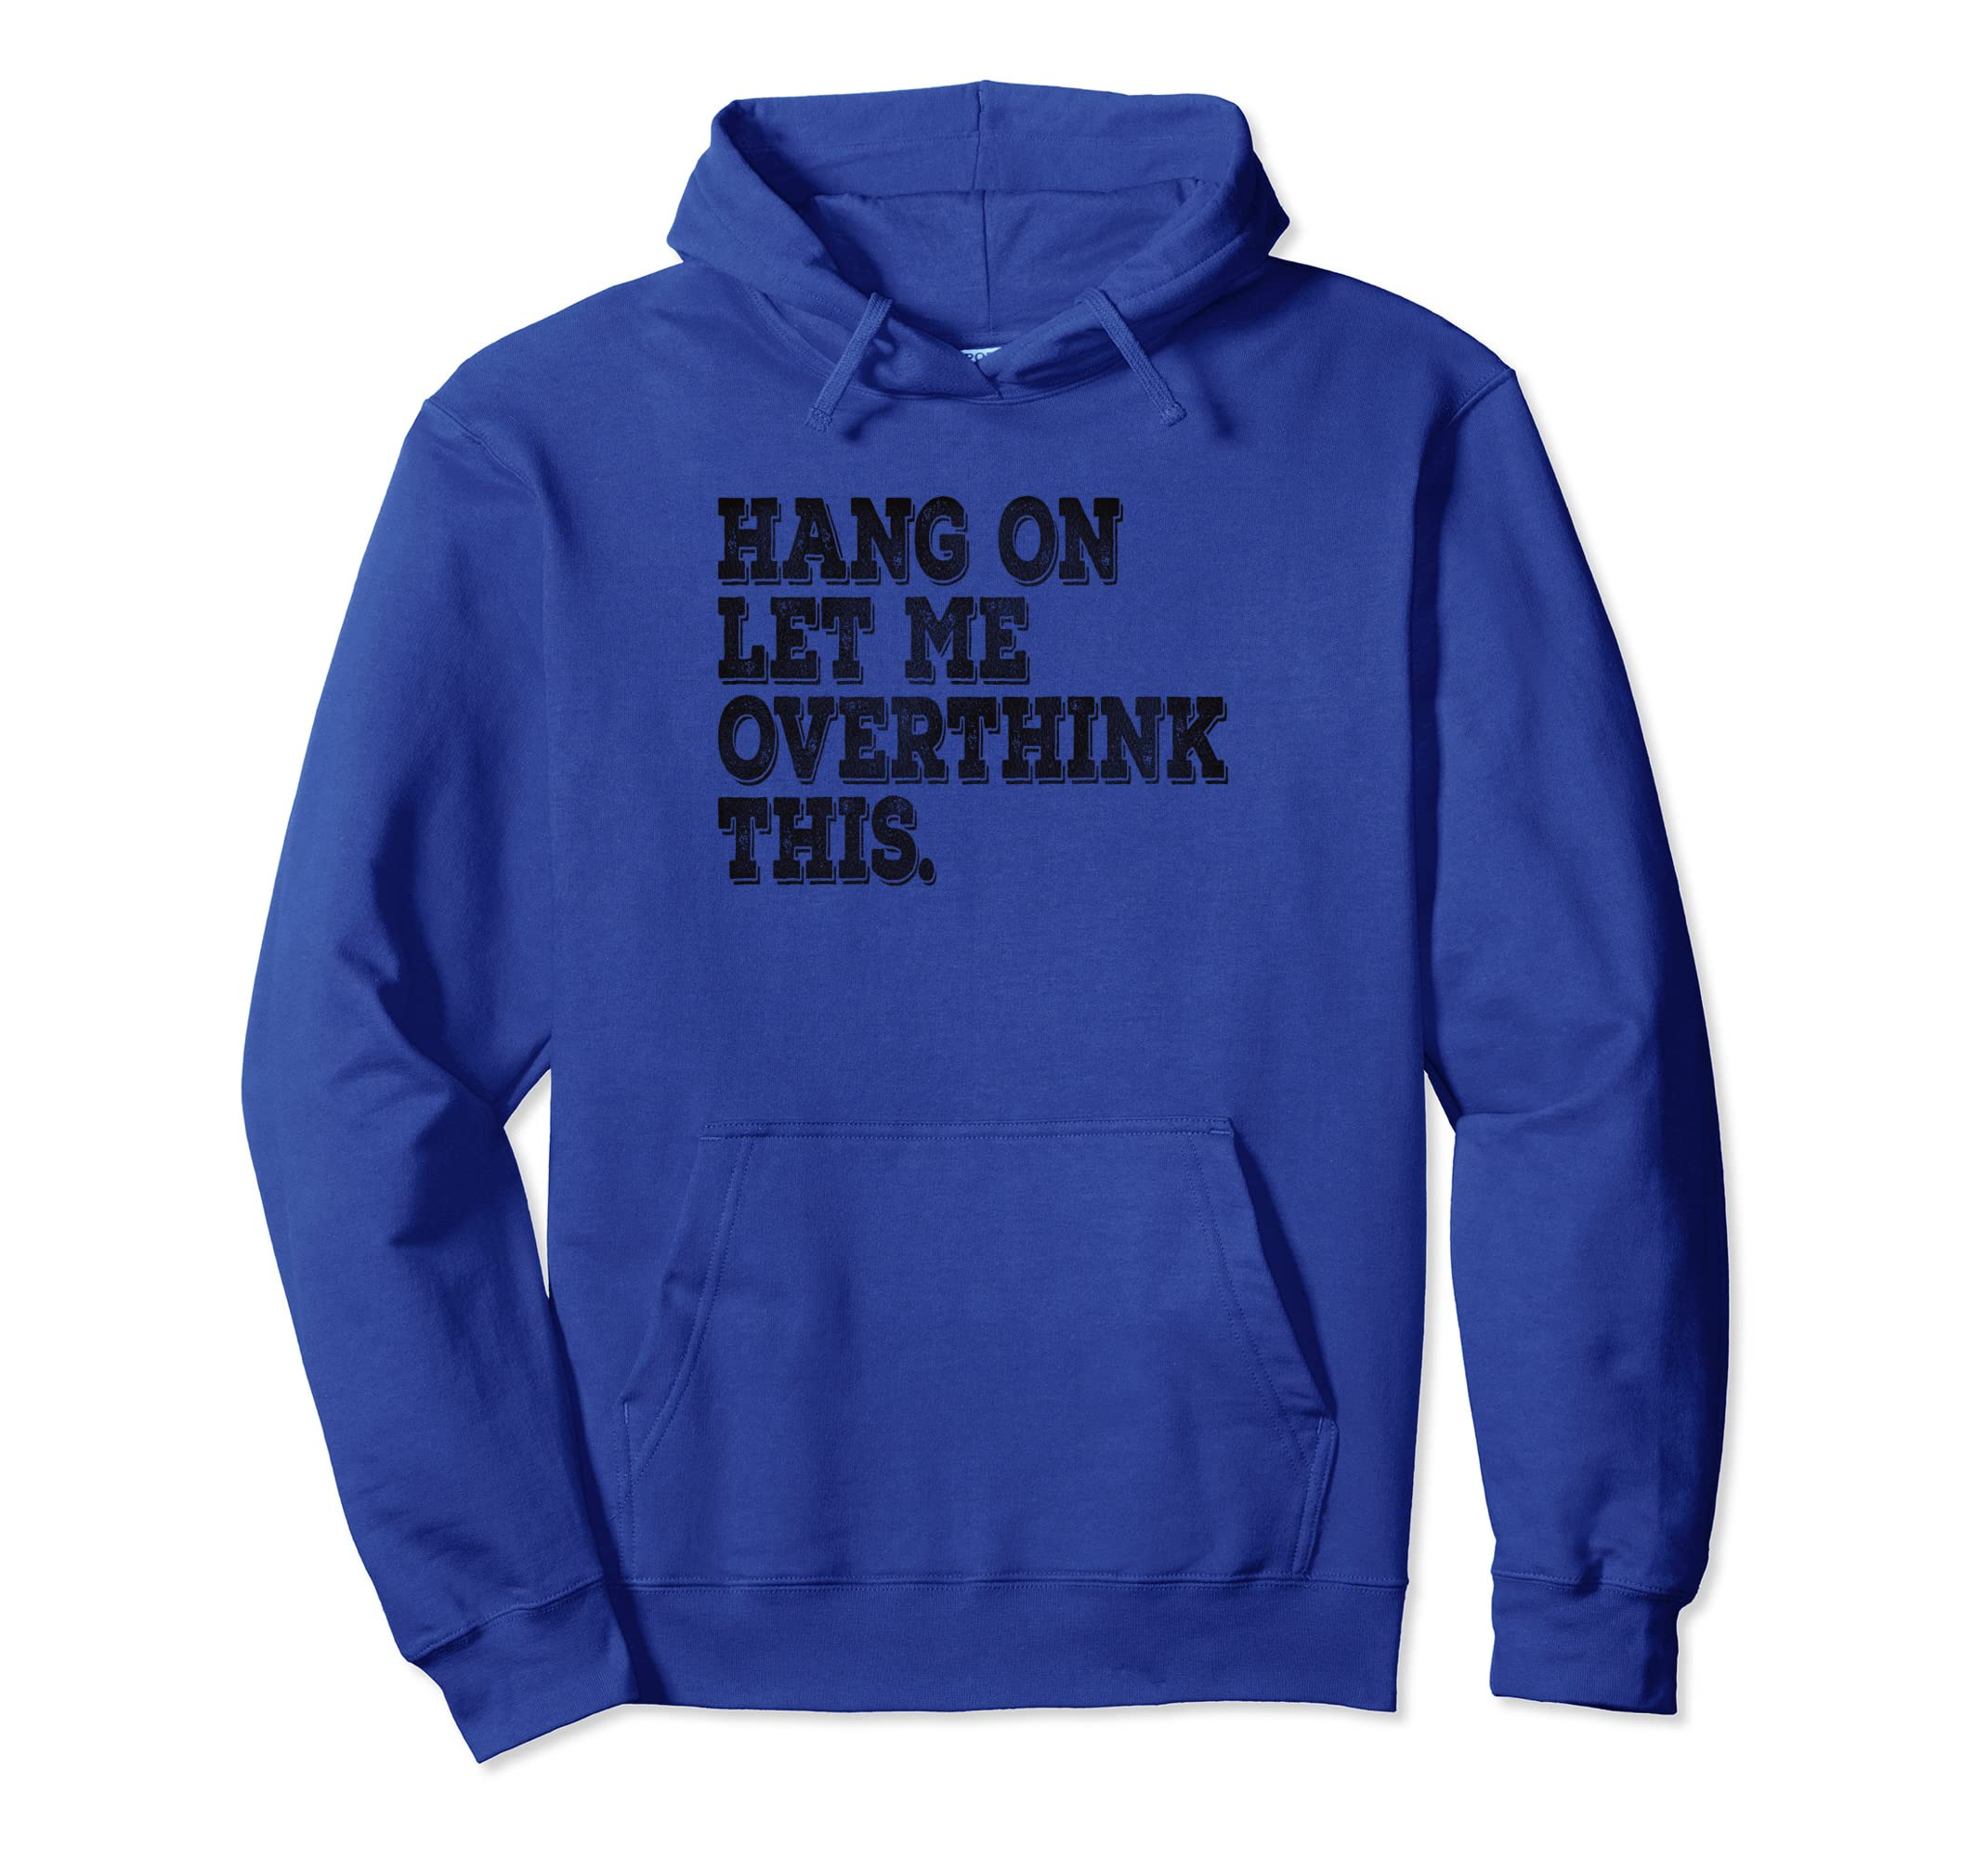 b29d56a9 Amazon.com: Hang On Let Me Overthink This Funny Awkward Hoodie: Clothing